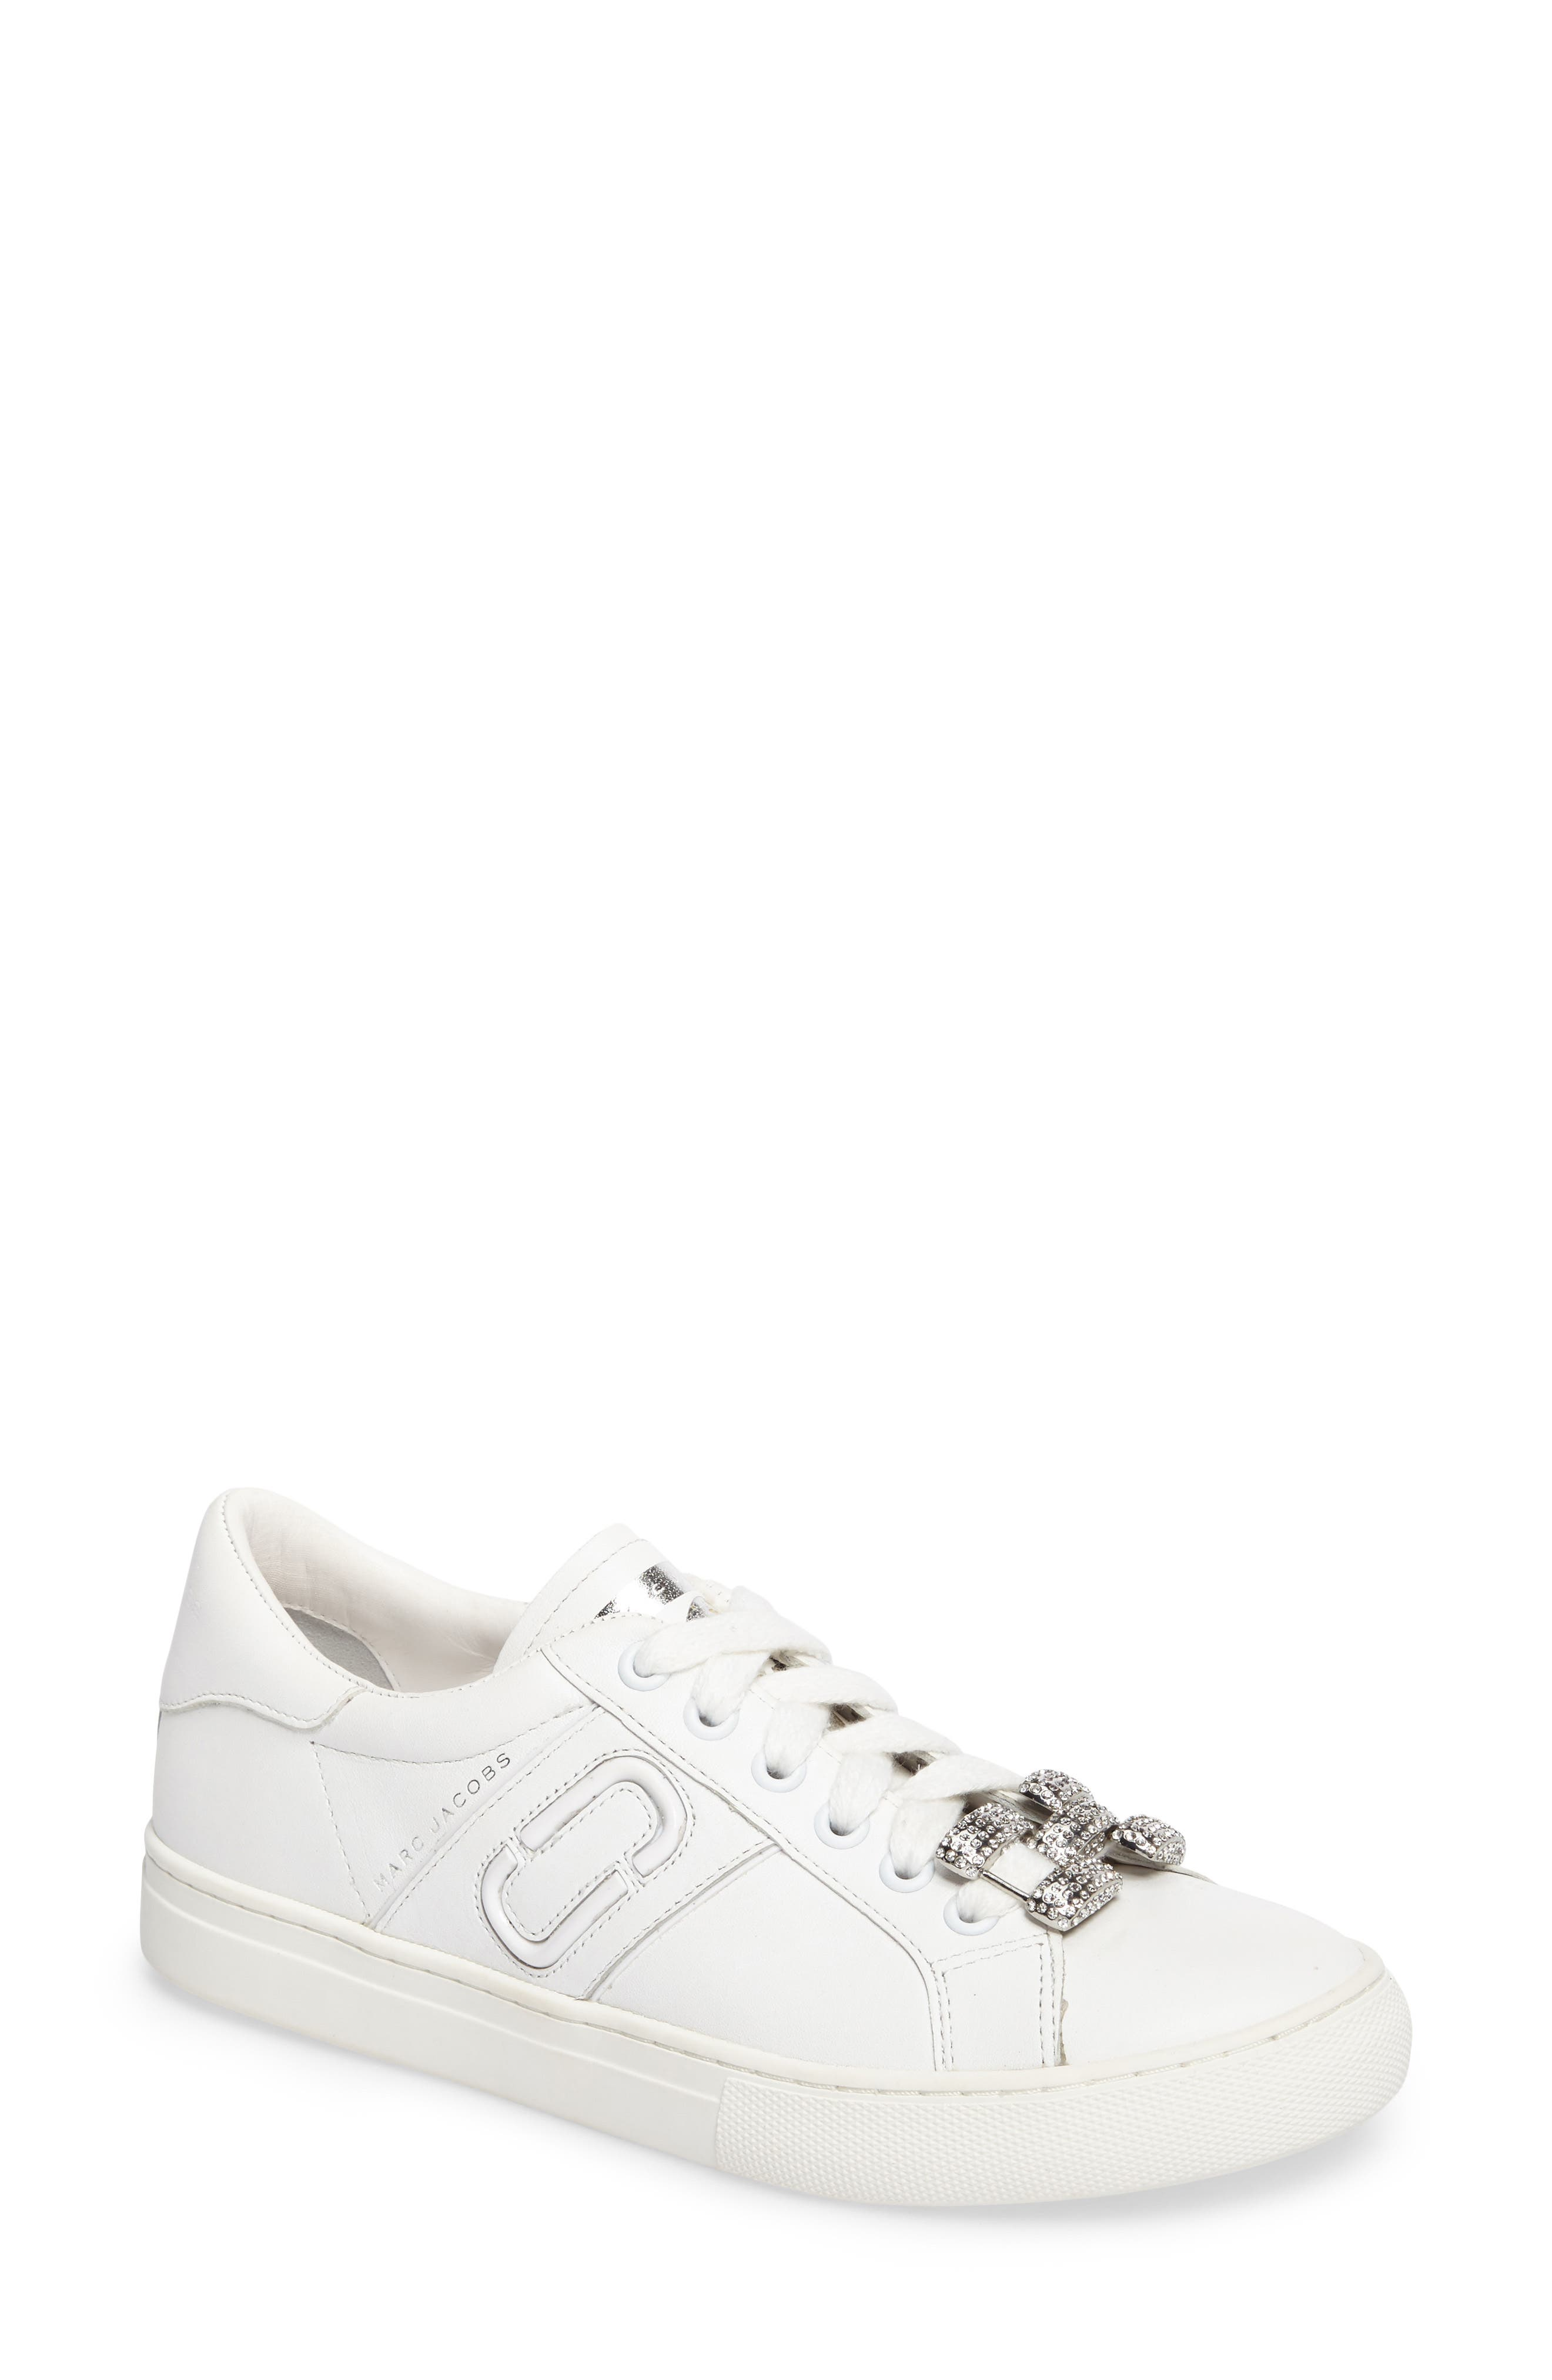 MARC JACOBS Empire Chain Link Sneaker (Women)